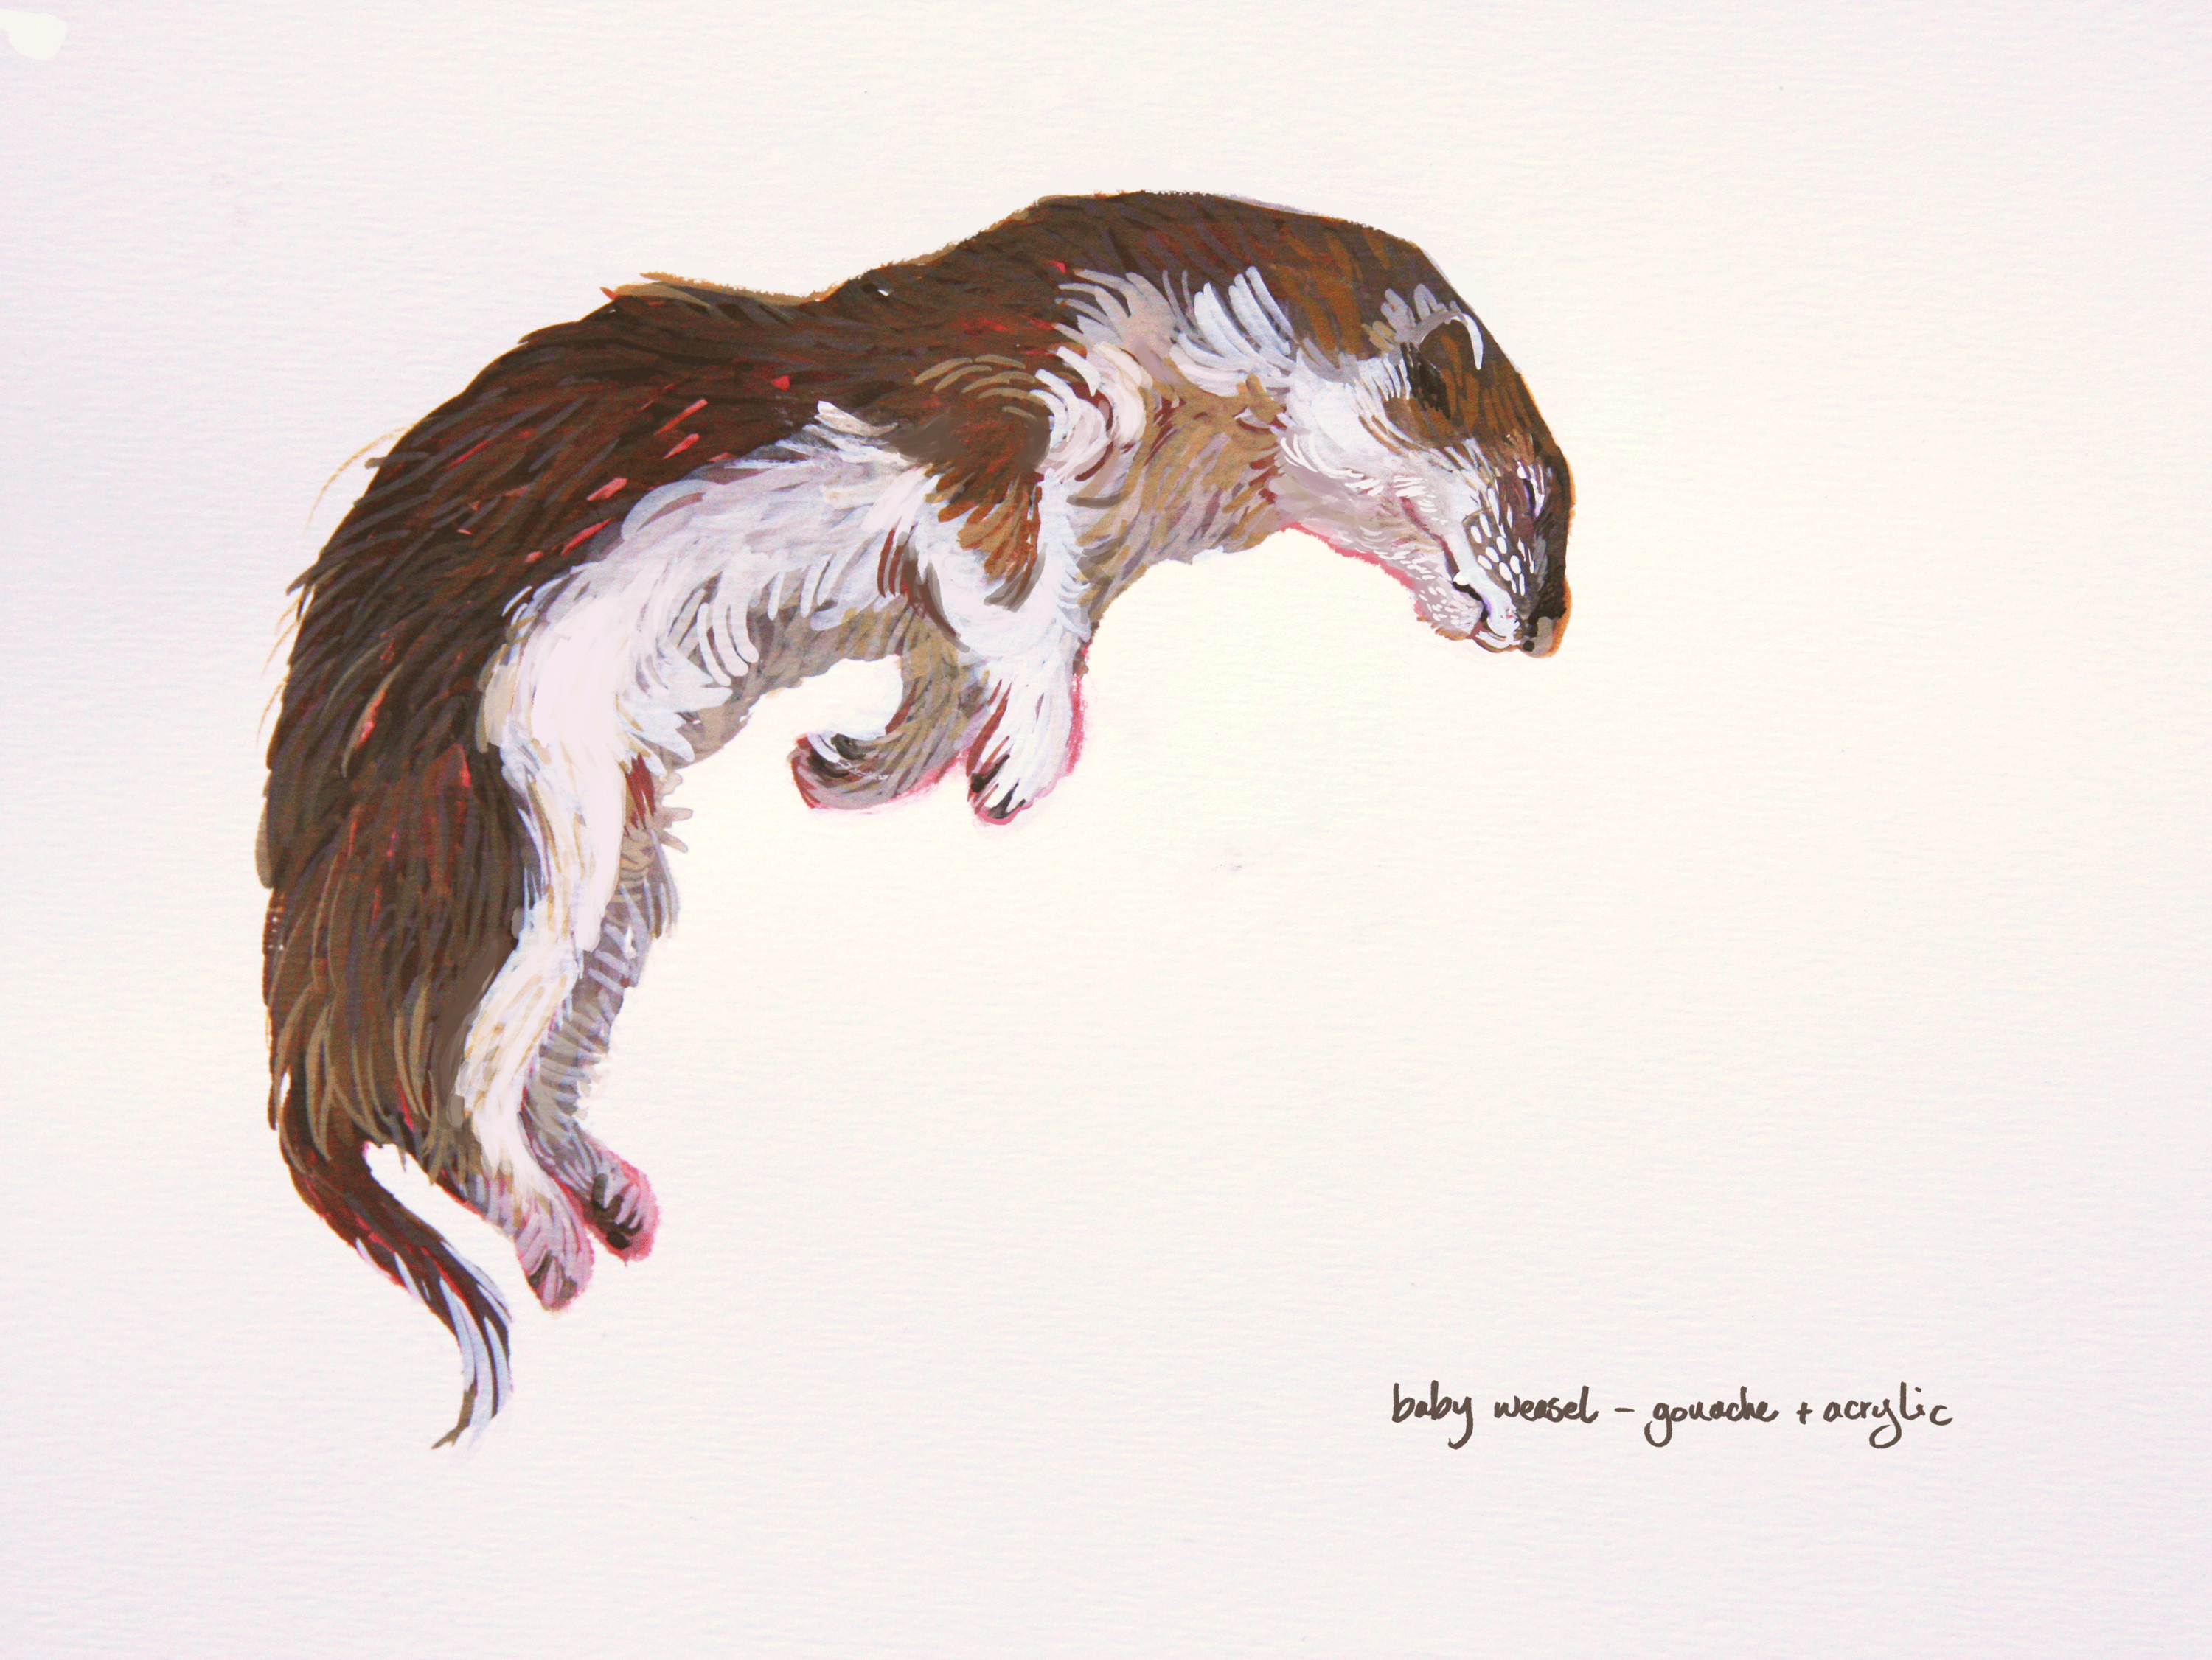 Young Weasel